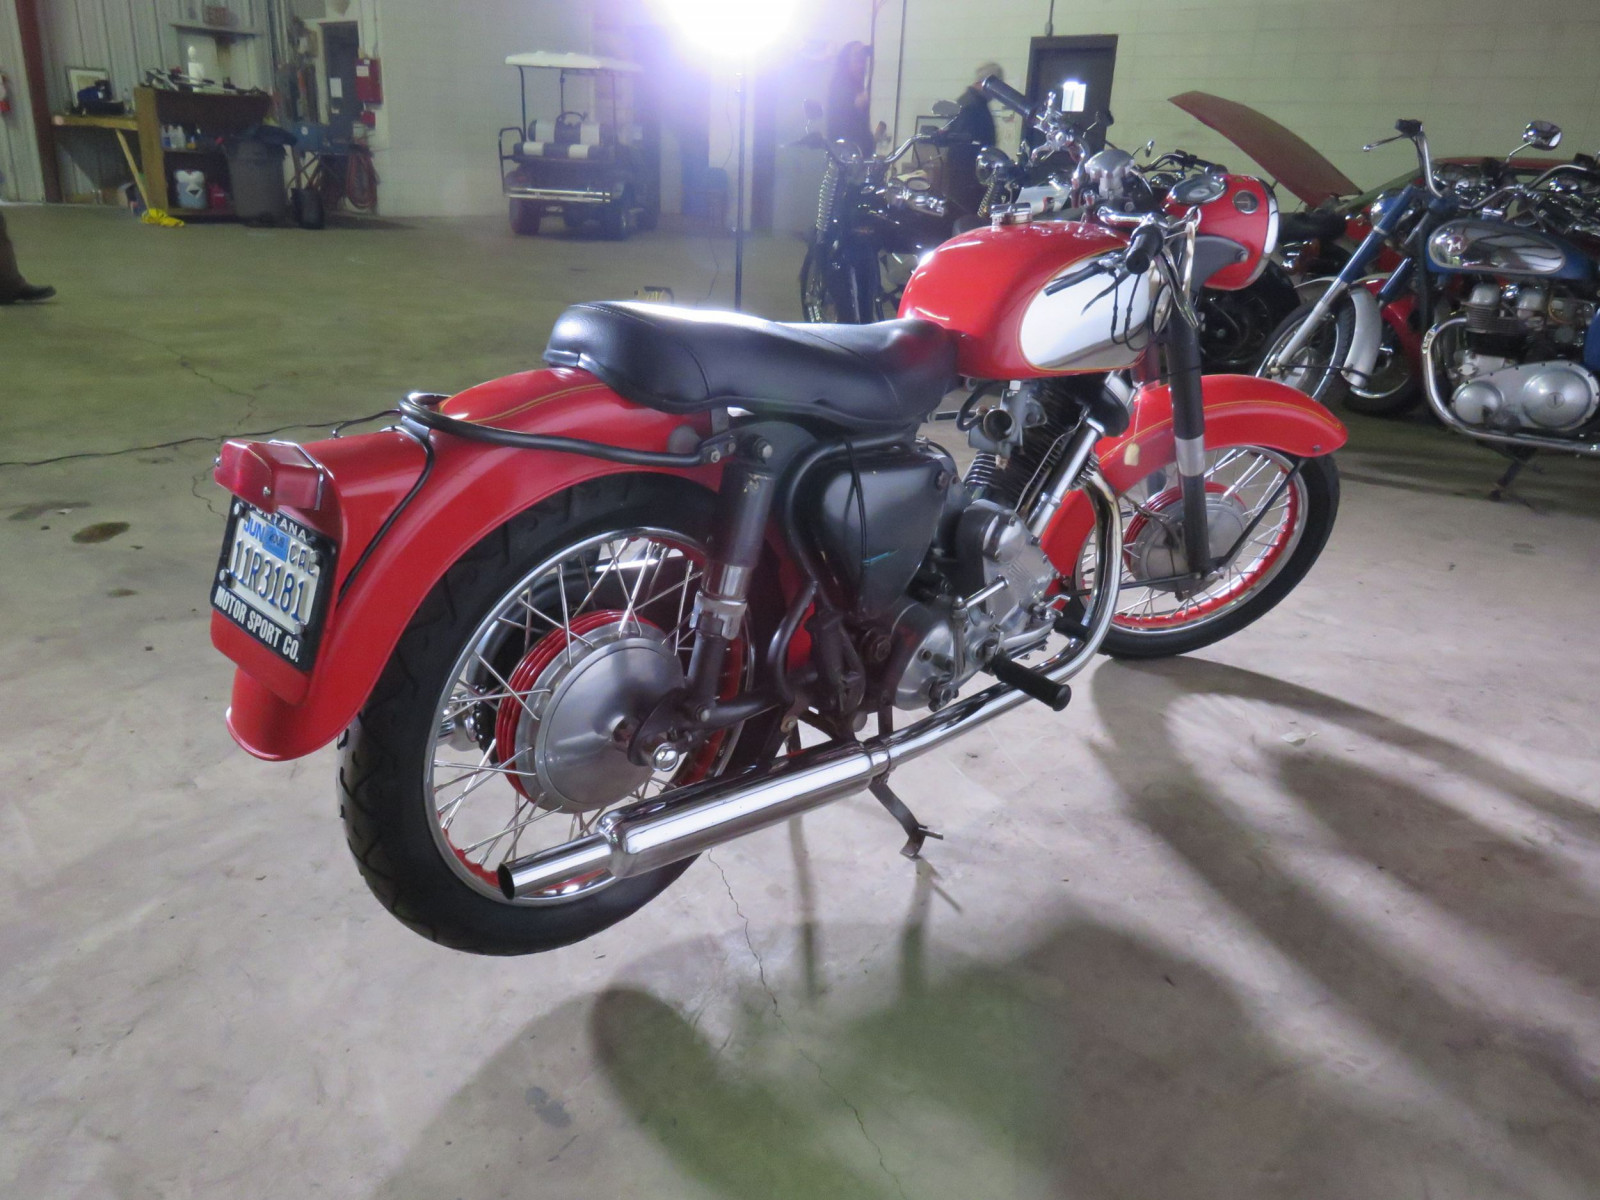 1965 Panther Model 120 Motorcycle - Image 5